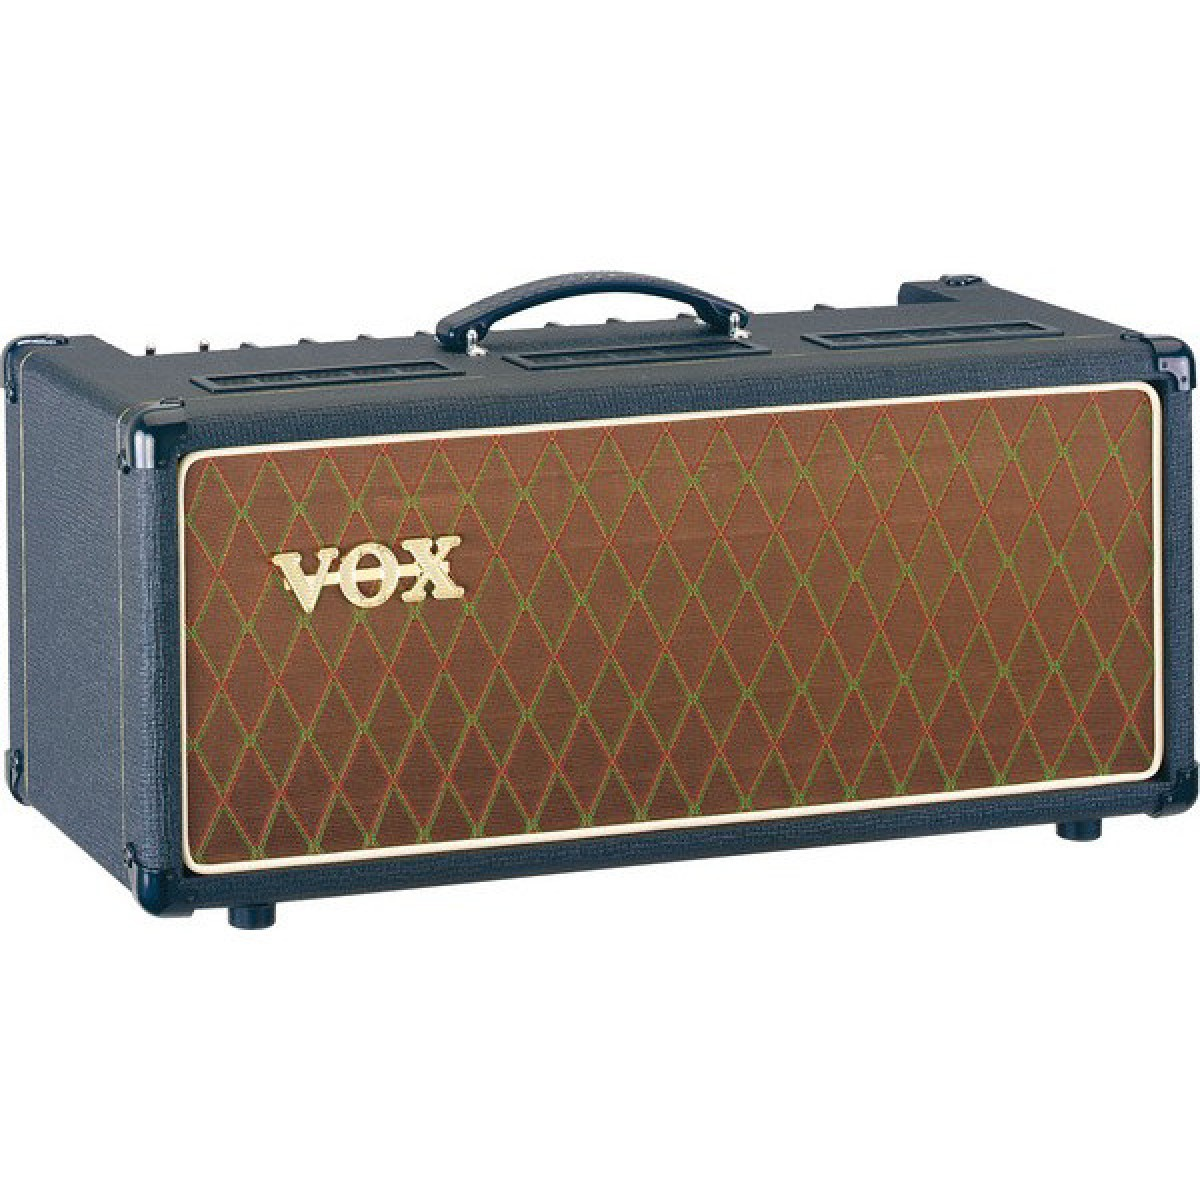 vox custom classic ac30cch buy tube guitar amp head best price. Black Bedroom Furniture Sets. Home Design Ideas